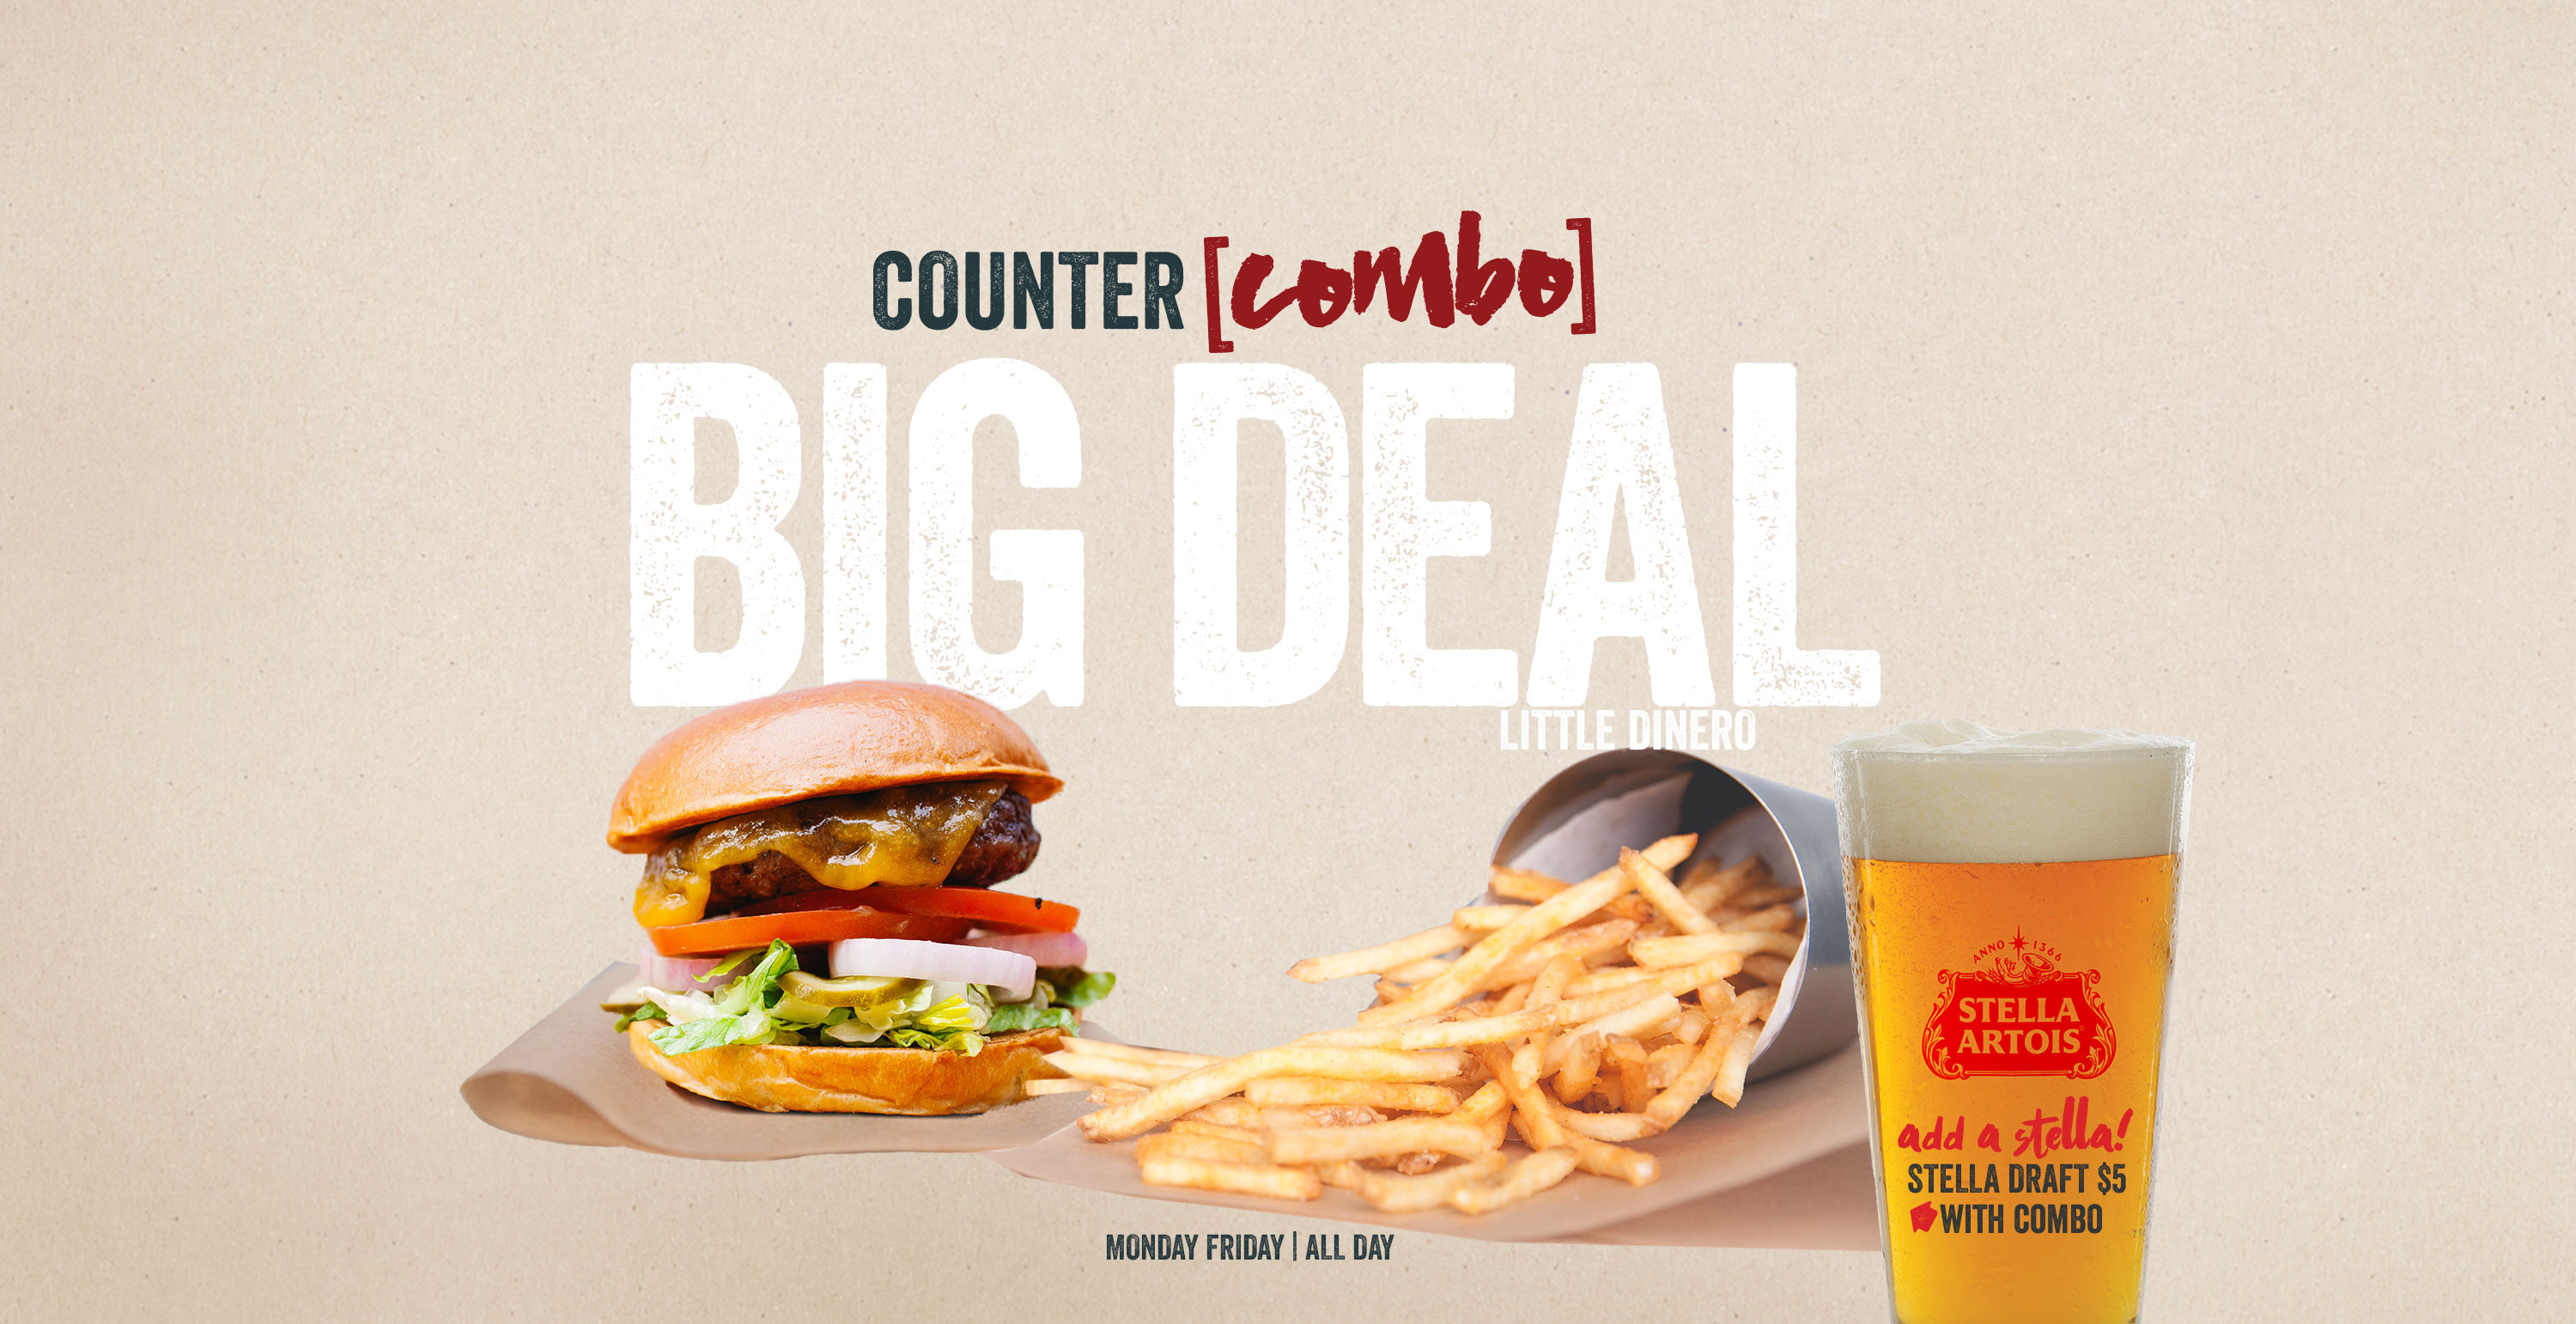 Burger Restaurant |The Counter